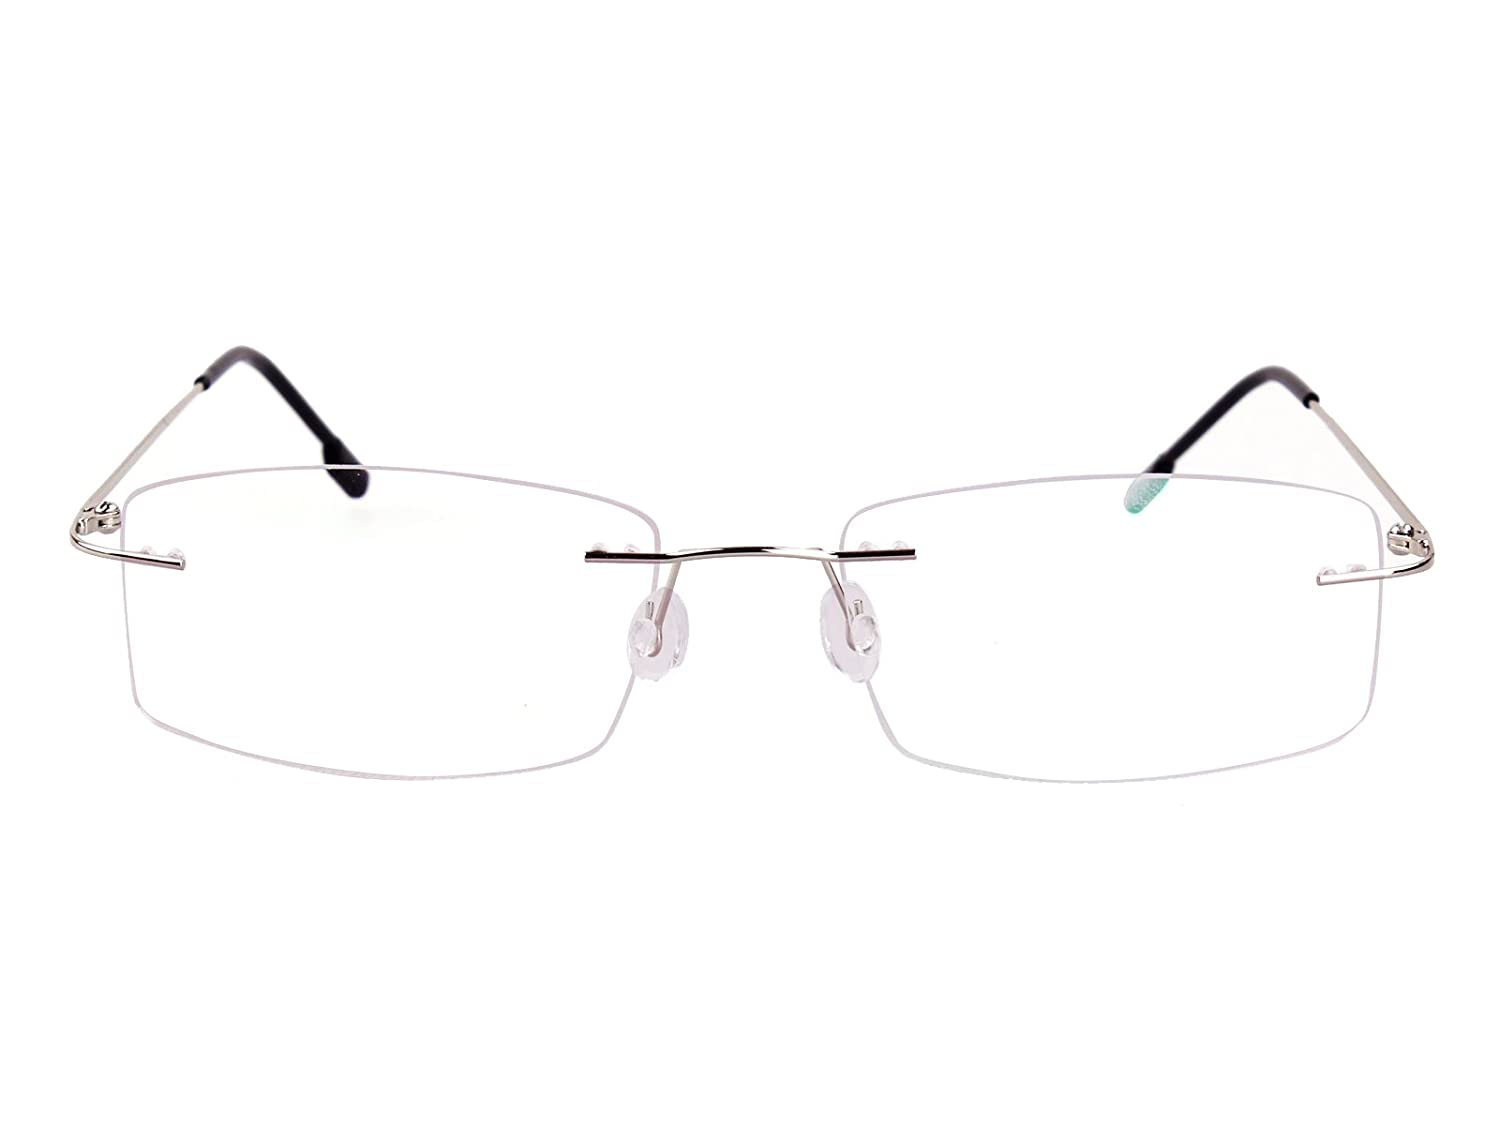 32b9f9705db Agstum Titanium Alloy Flexible Rimless Hinged Frame Prescription Eyeglasses  Rx (Silver